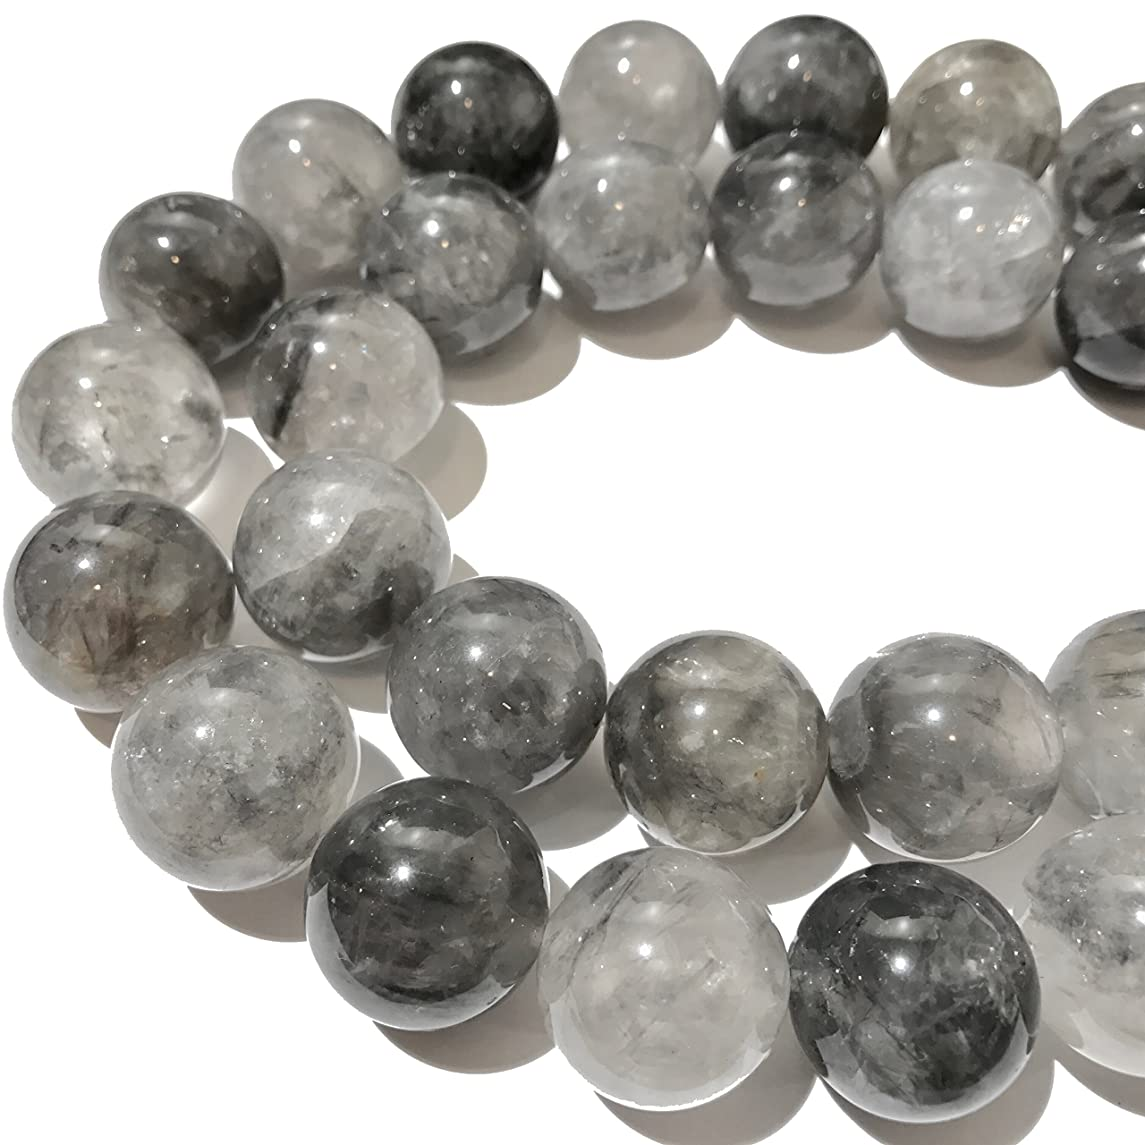 [ABCgems] Rare African Cloudy Quartz (Translucent- Beautiful Inclusions) 16mm Smooth Round Beads for Beading & Jewelry Making